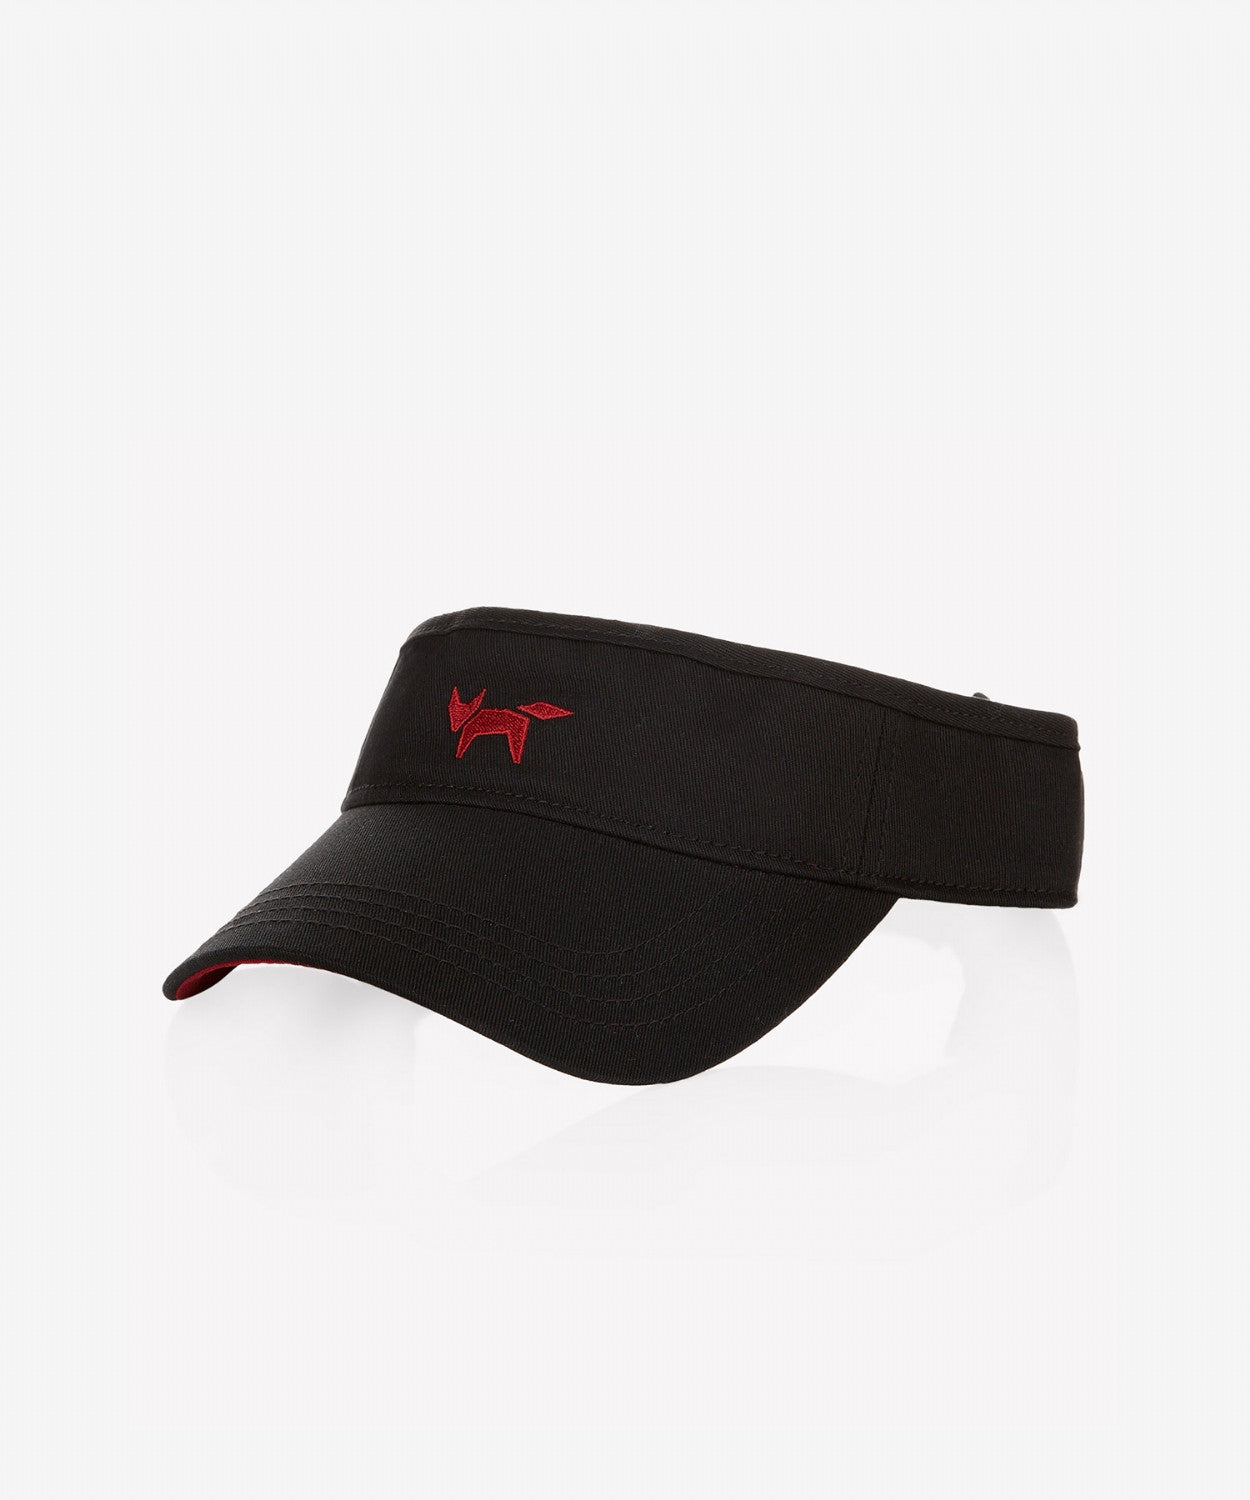 BLACK COTTON GOLF VISOR